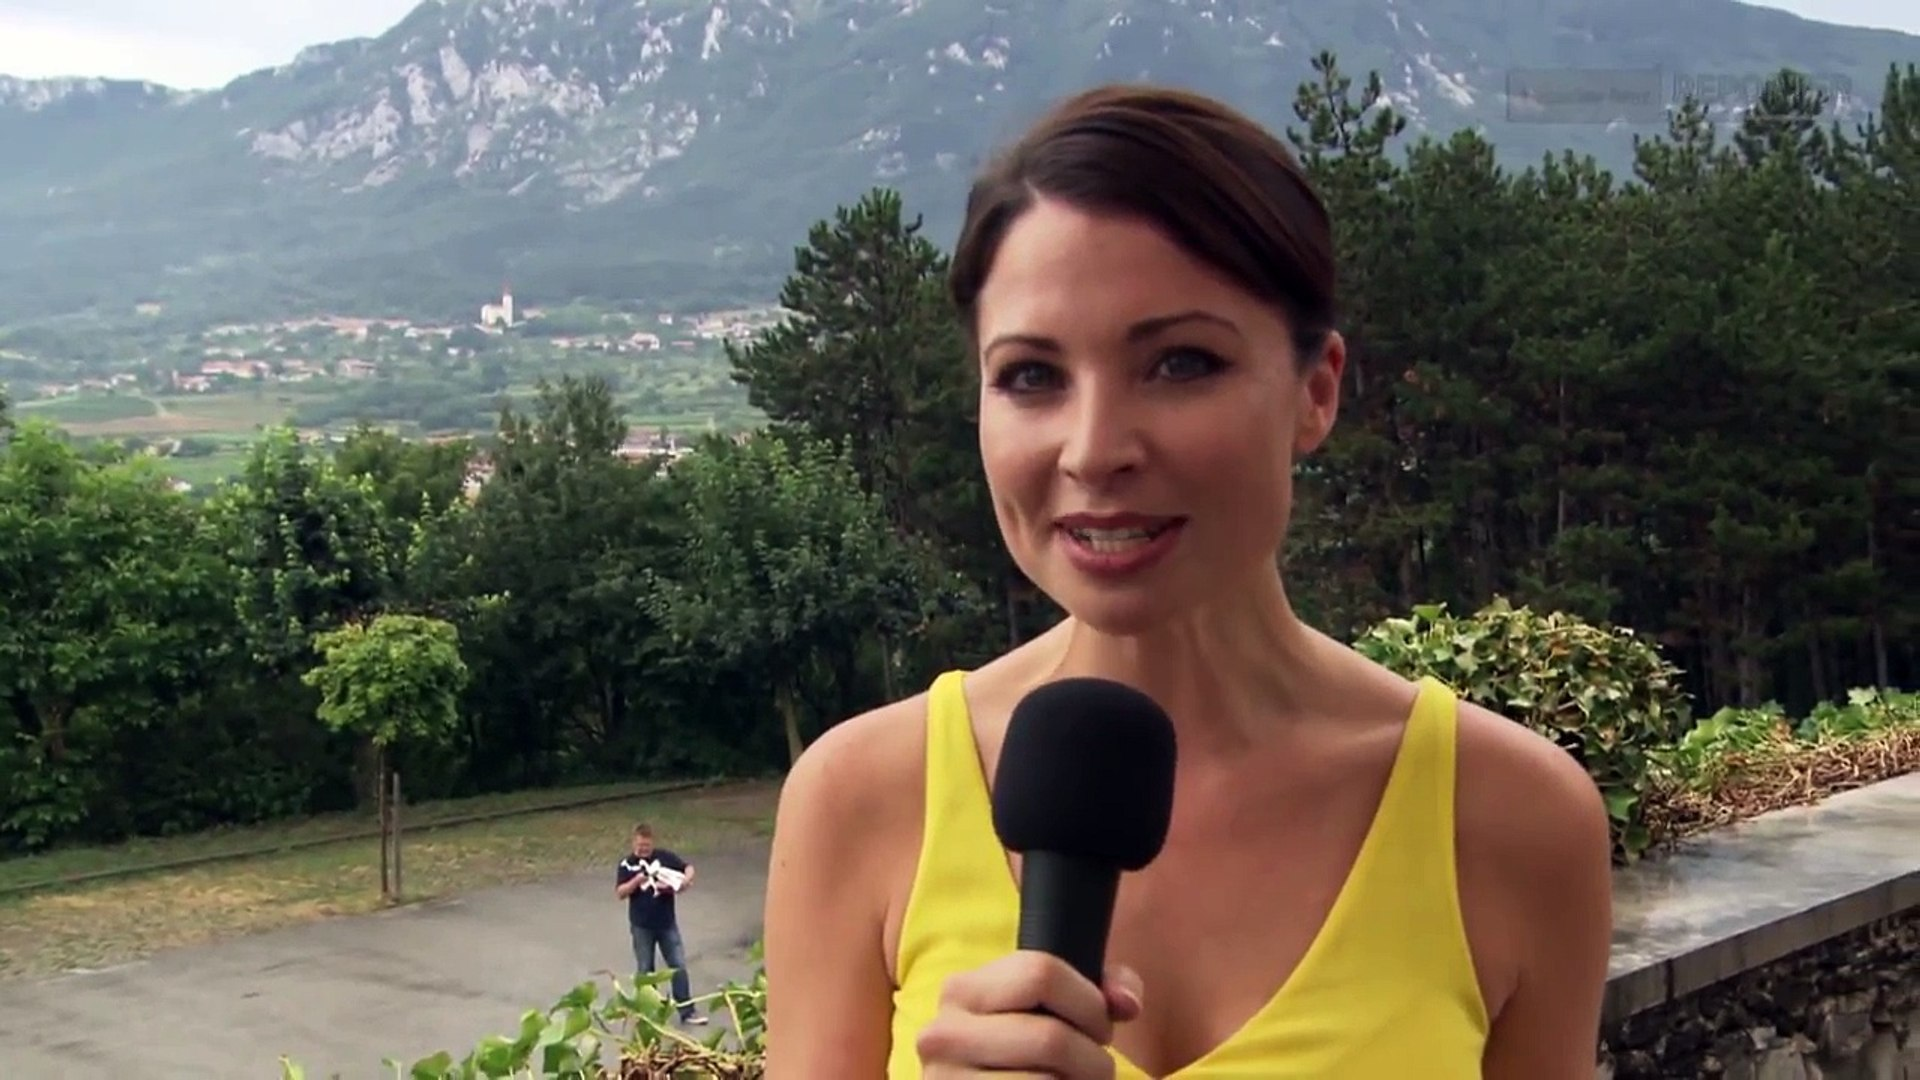 Mercedes-Benz TV: Mercedes-Benz Reporter Torie drives the new A-Class.